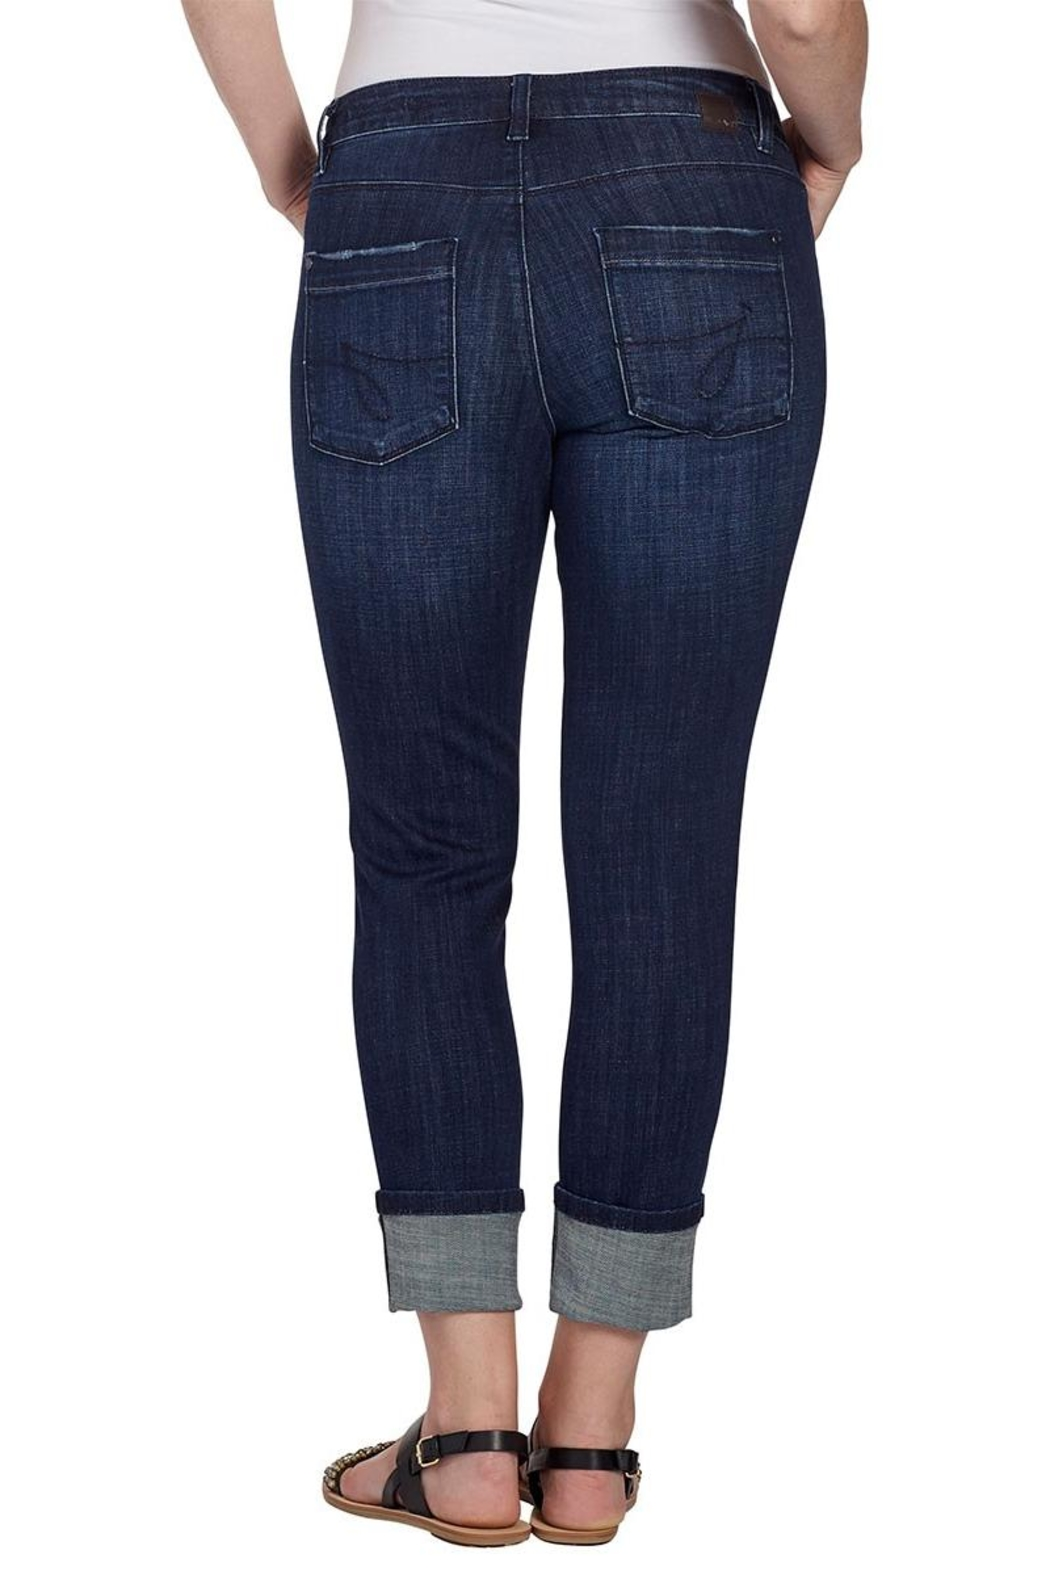 JAG The Maddie skinny Jean - Front Full Image